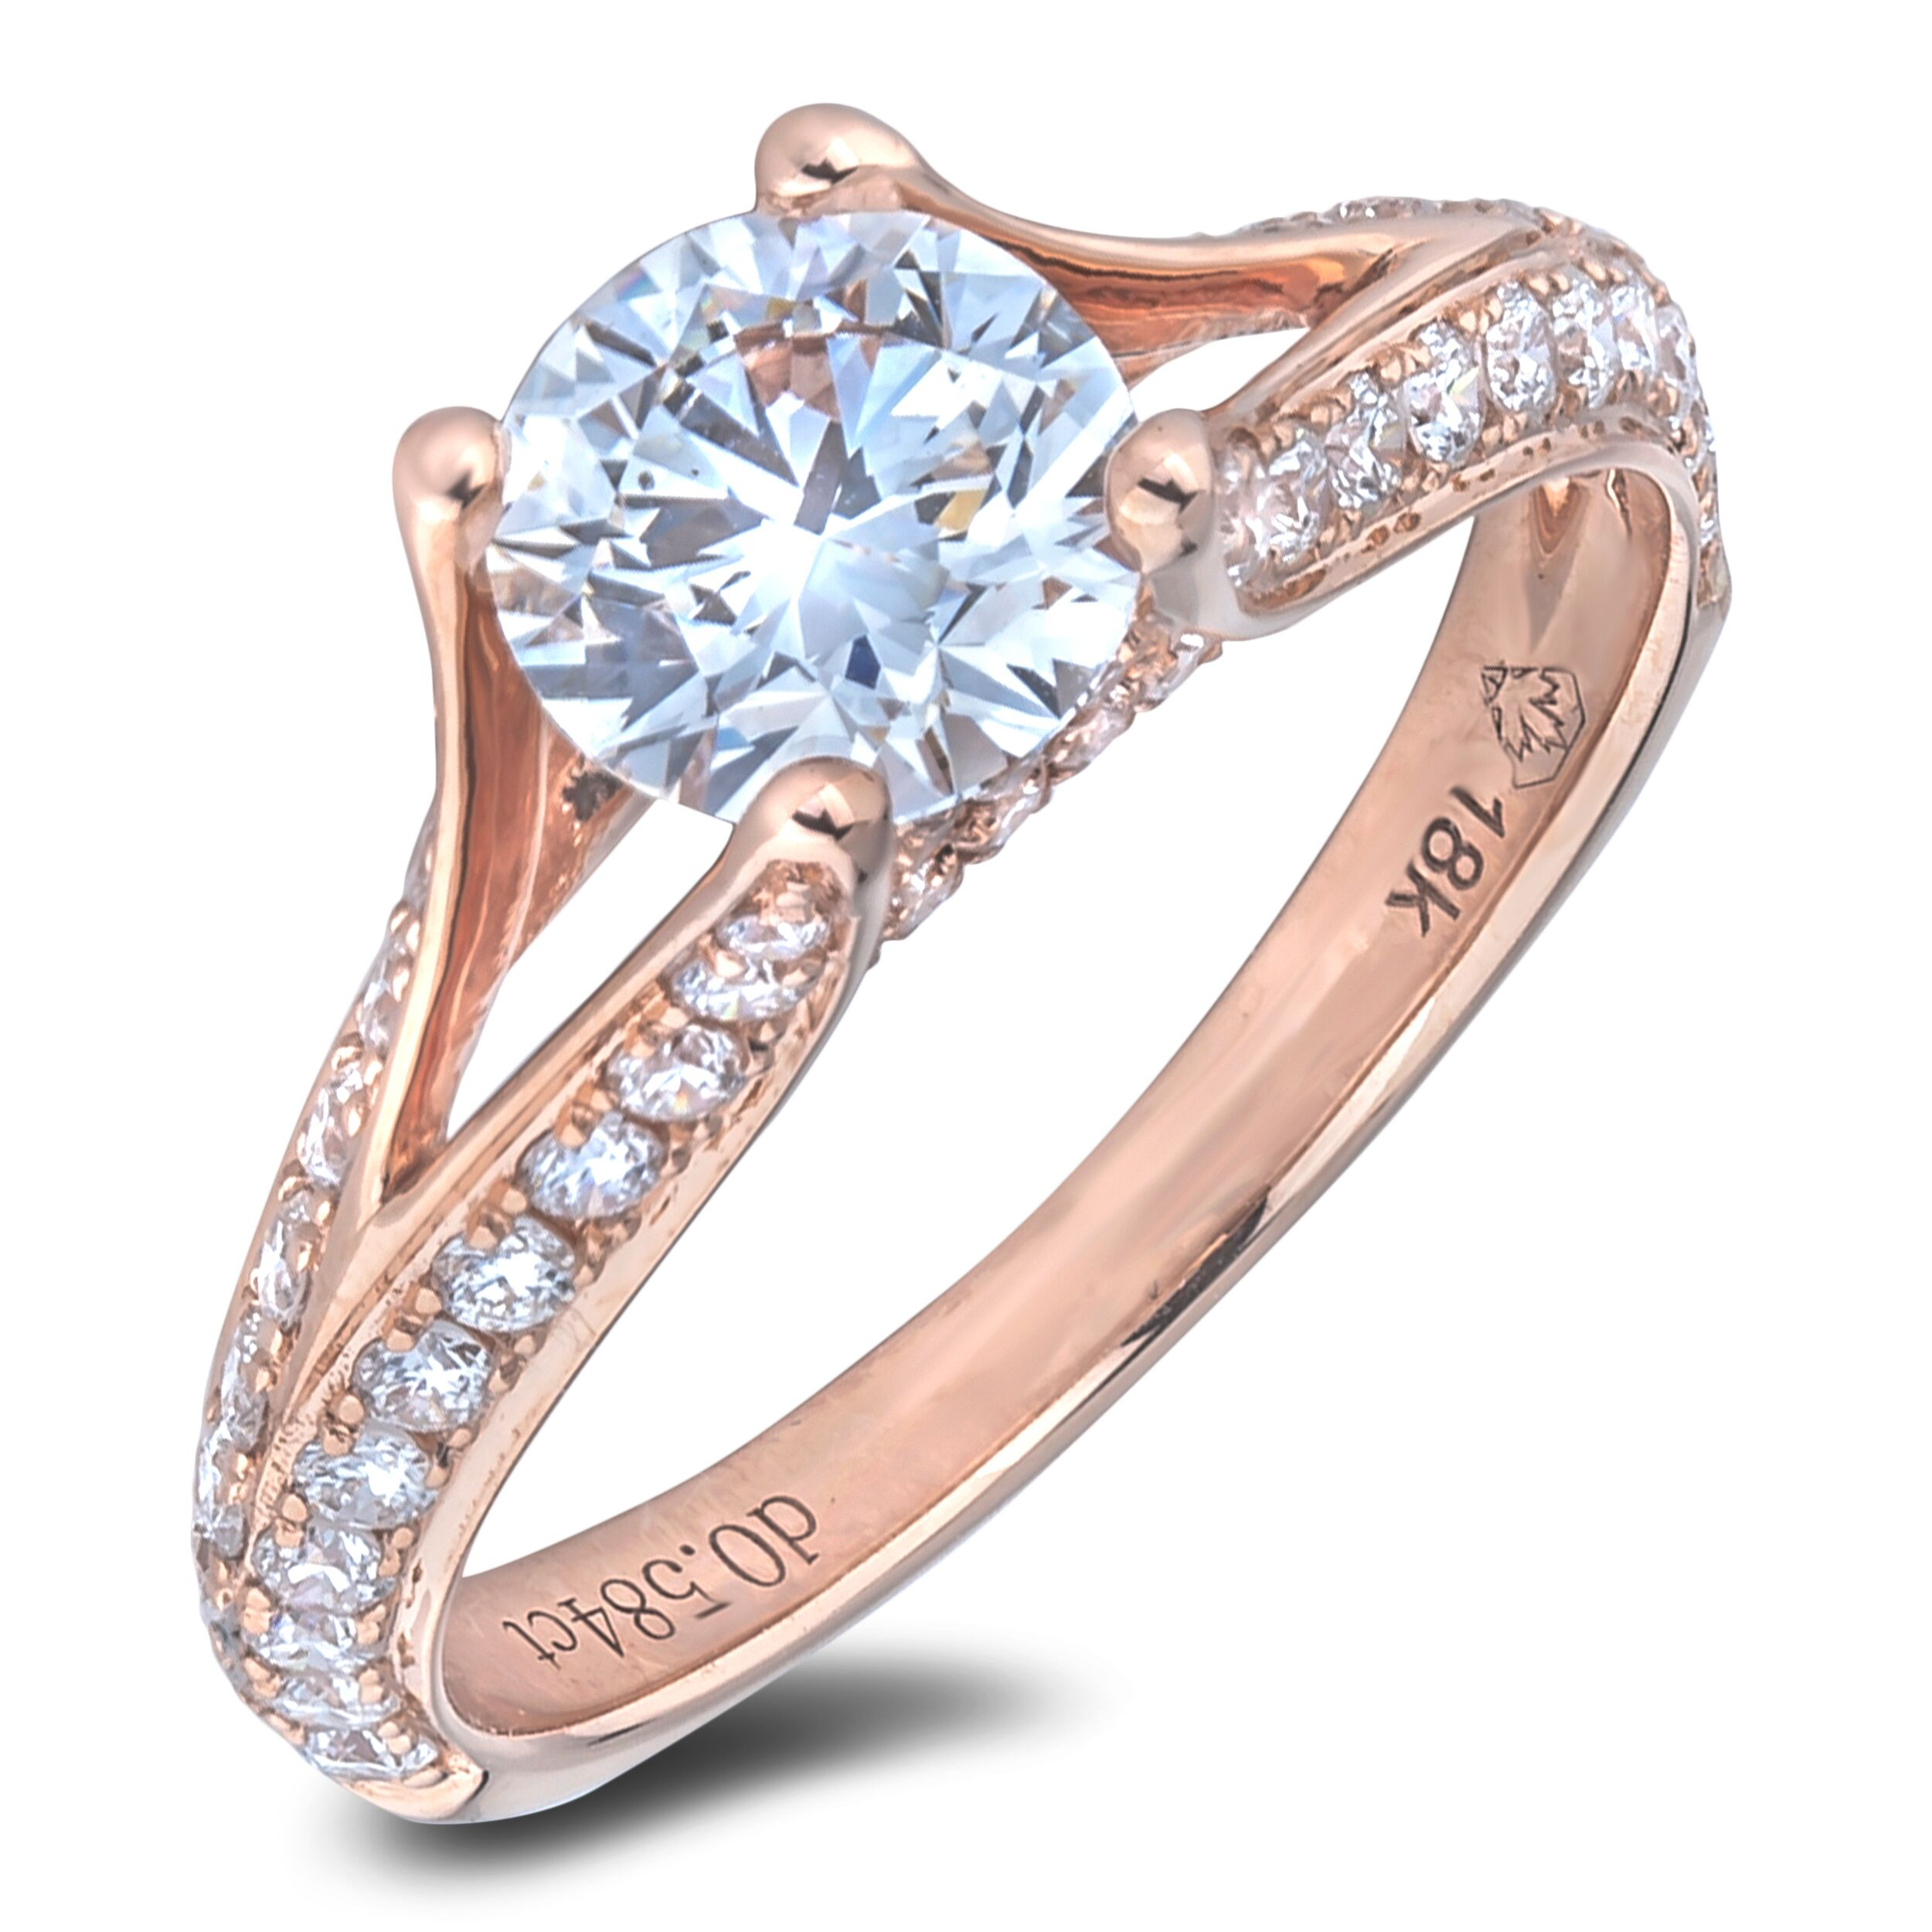 1 Carat Gia Certified Diamond Engagement Ring Within 2019 Certified Diamond Anniversary Bands In Rose Gold (View 2 of 25)